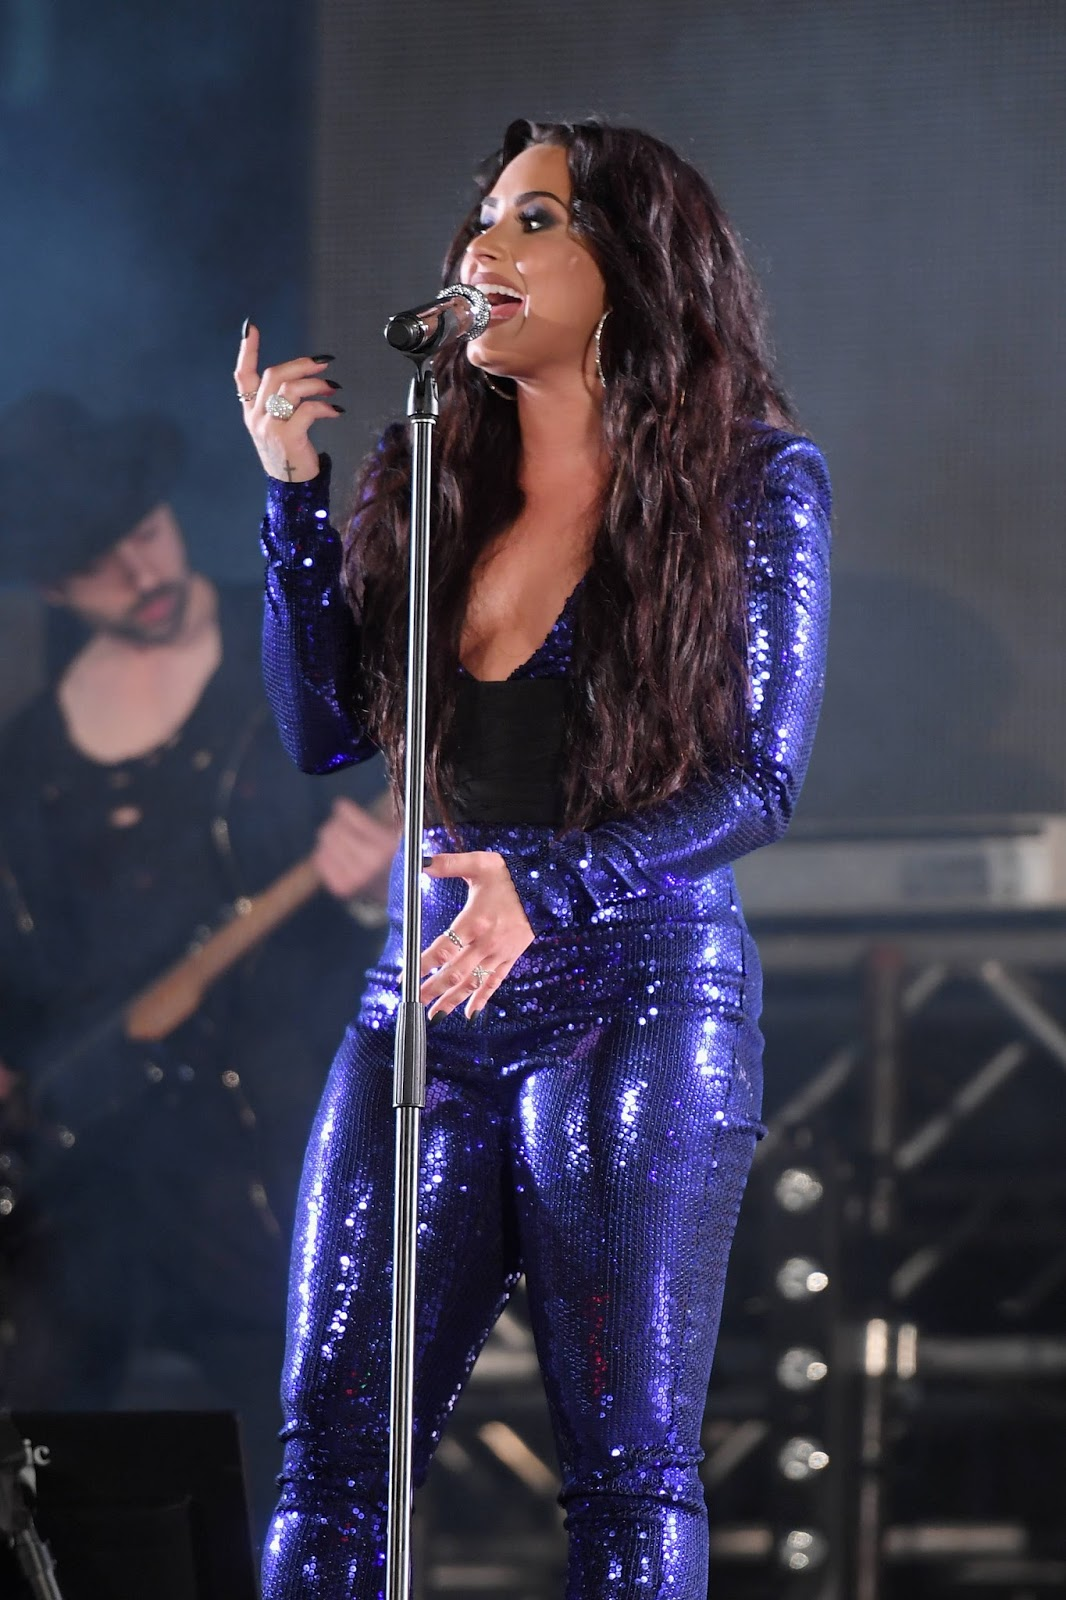 Demi Lovato Performing at Fontainebleau Miami Beach Rings